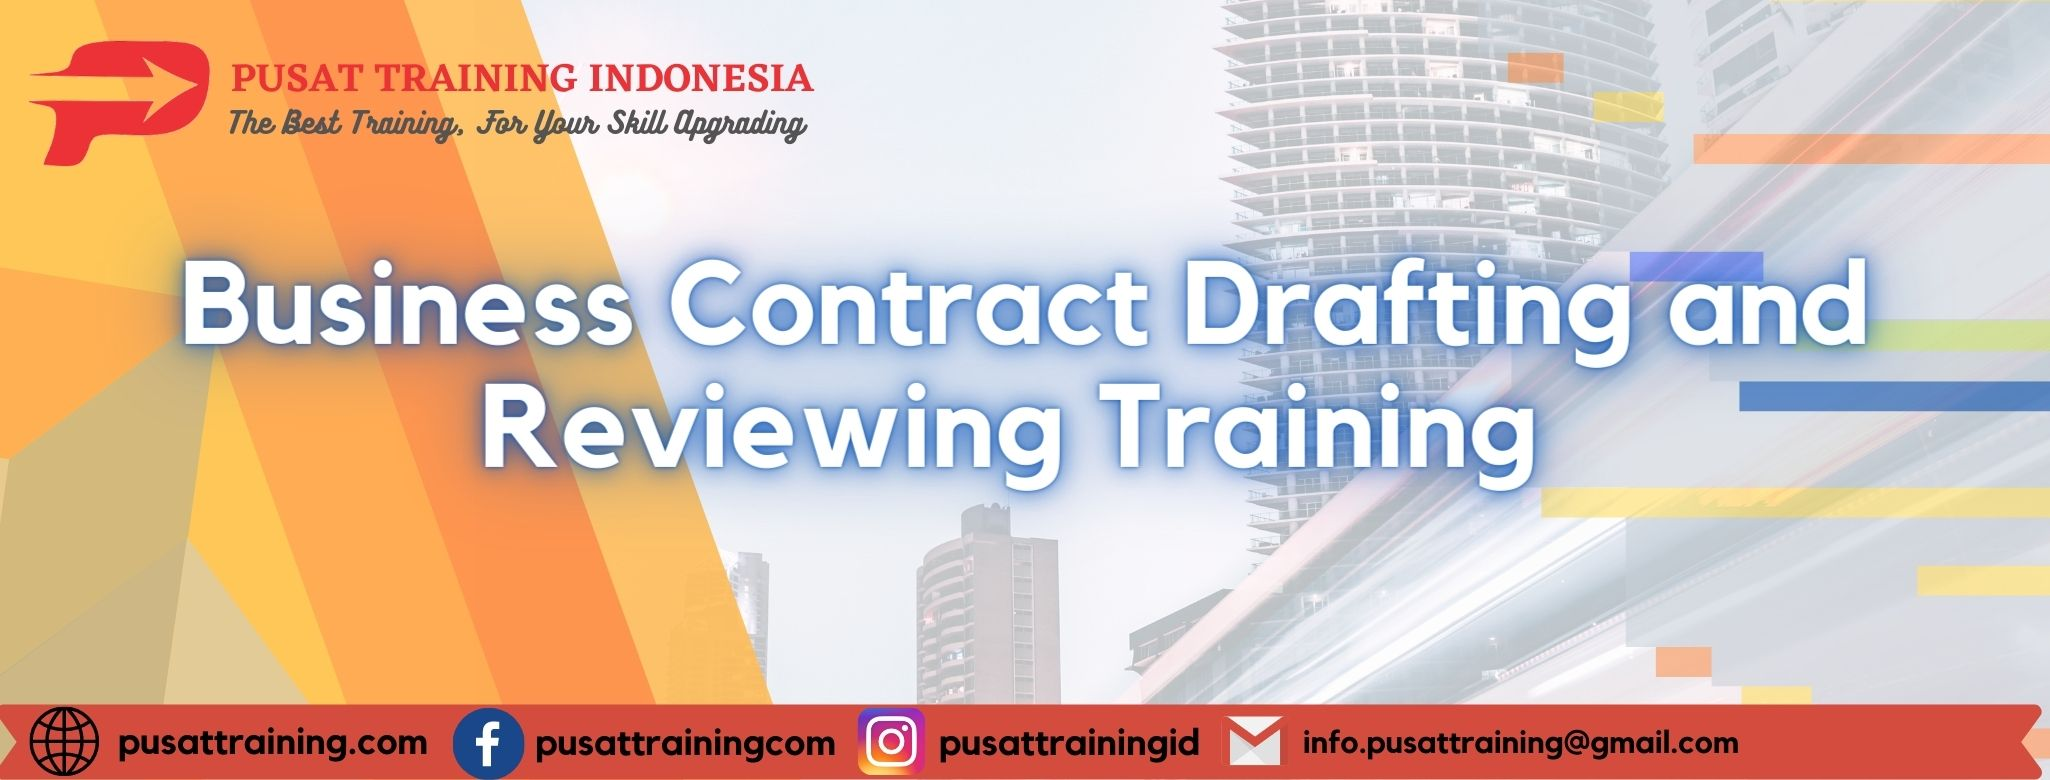 Business-Contract-Drafting-and-Reviewing-Training